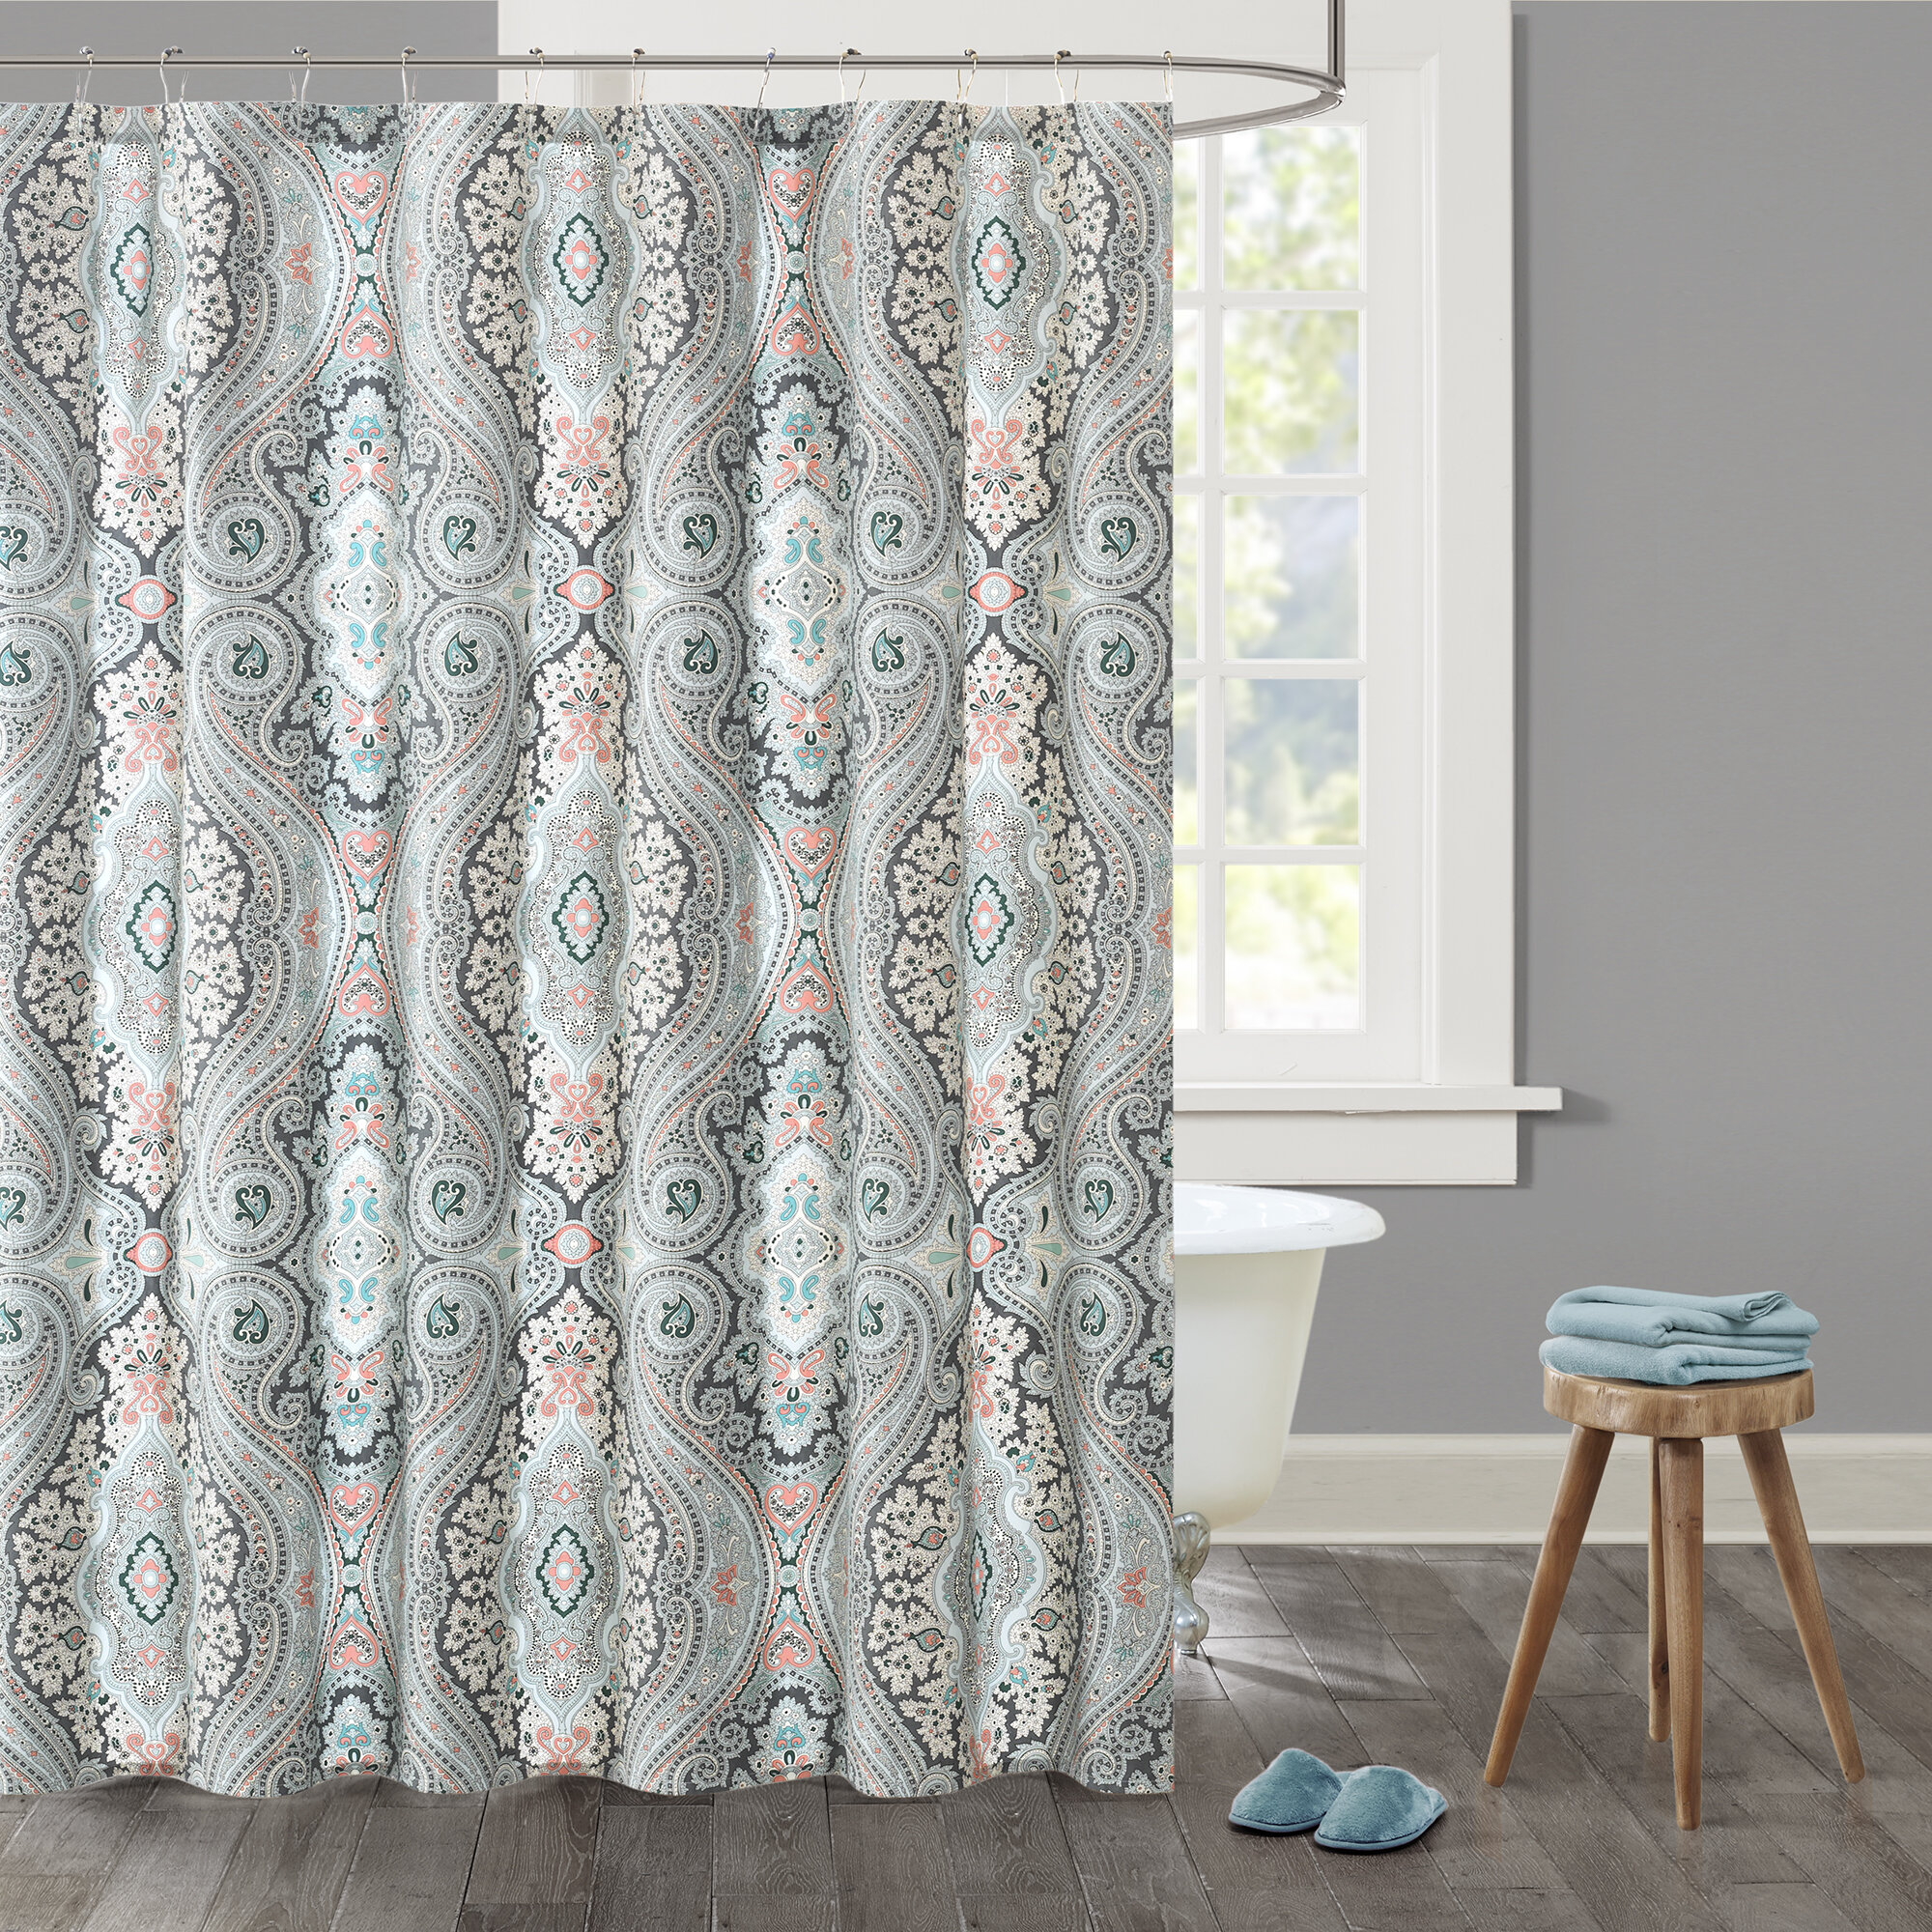 shower lush x amazon decor curtain blue com inch syke kitchen home curtains by dp